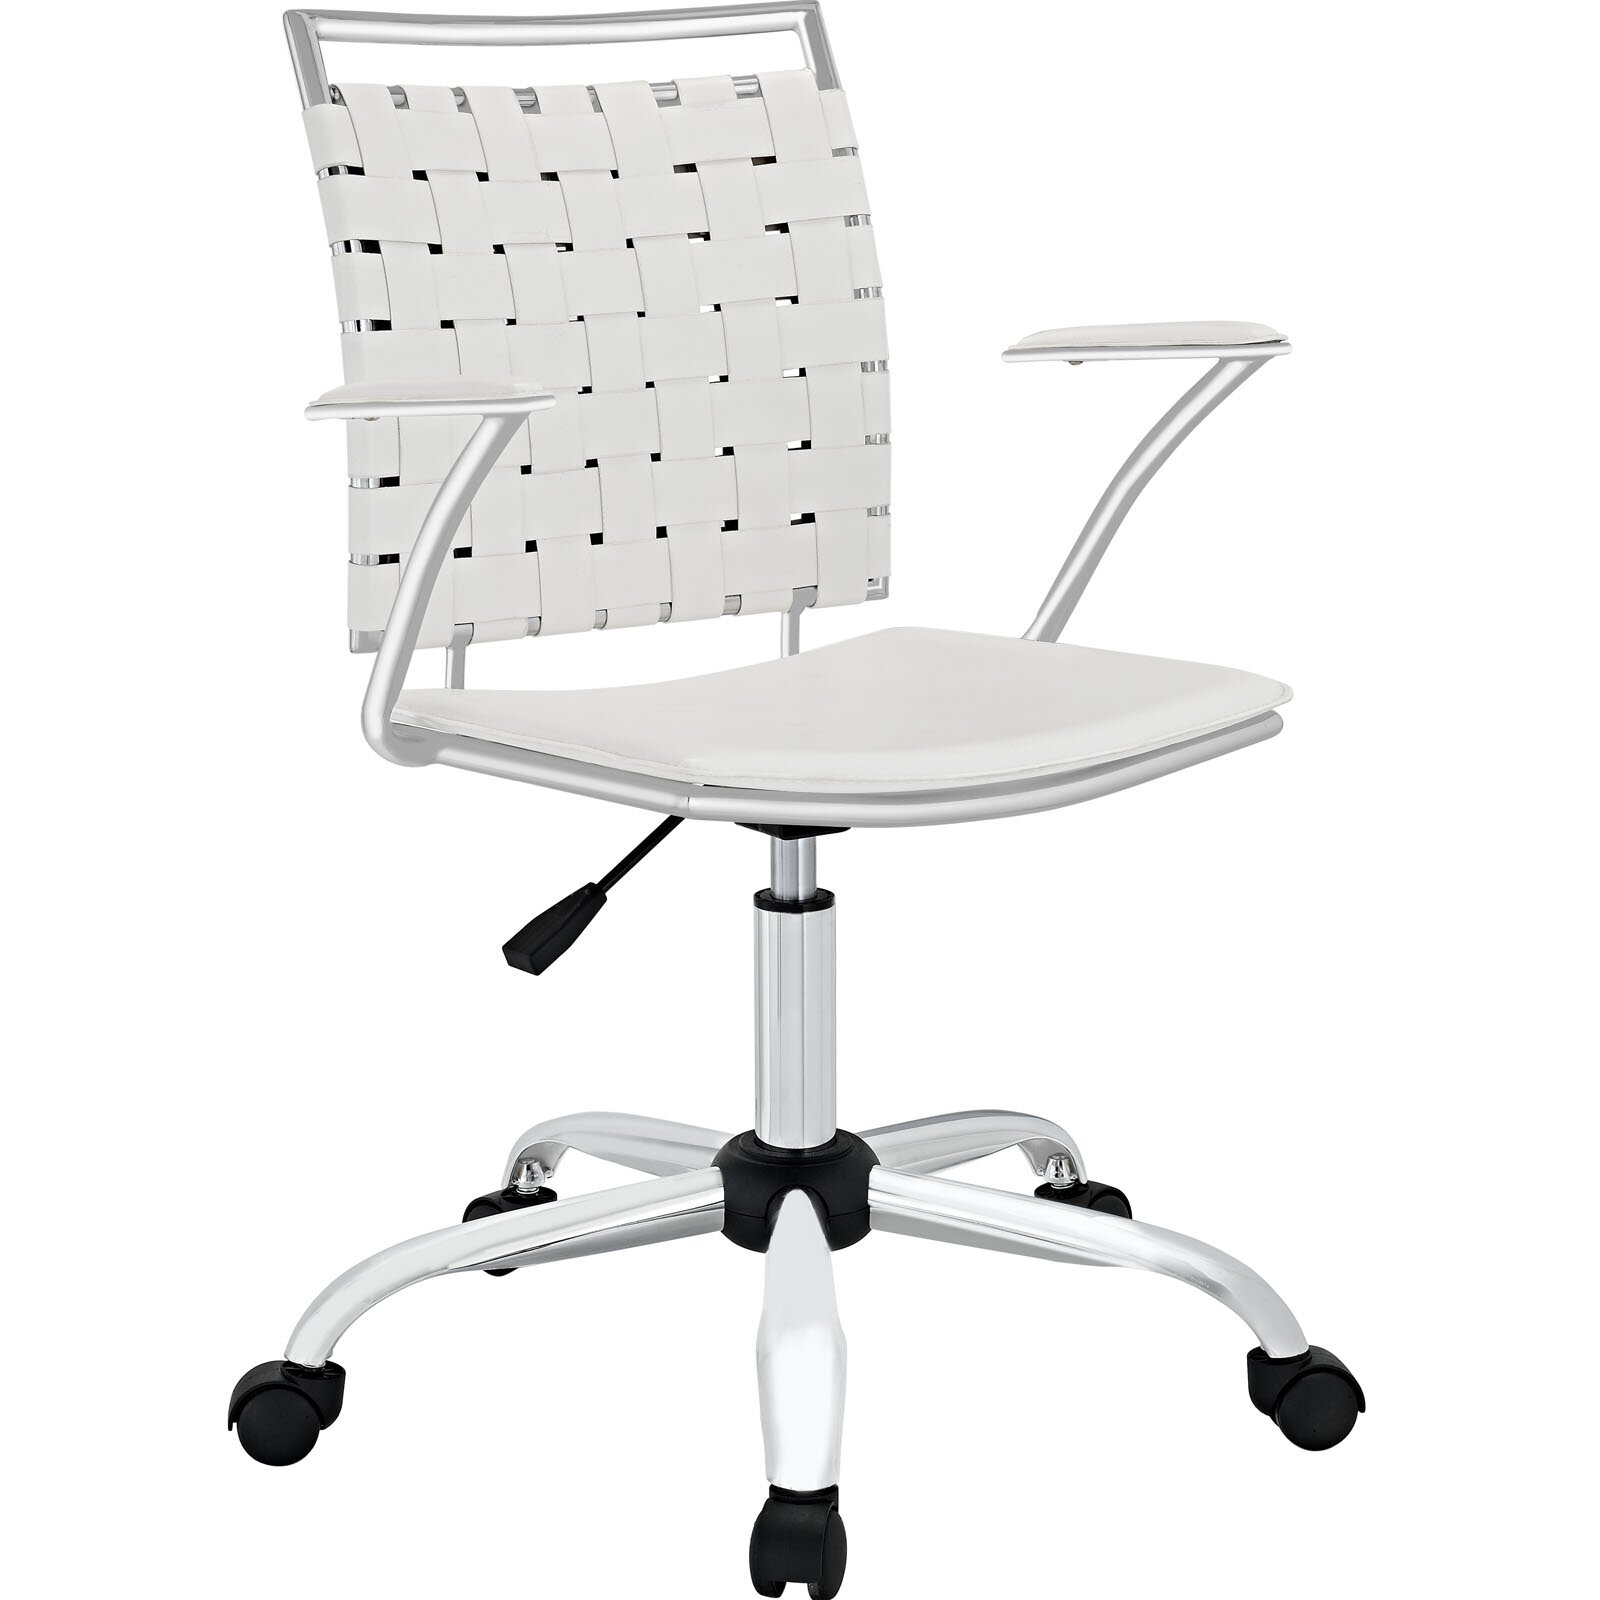 Modway Fuse Mid Back Adjustable Office Chair Reviews Wayfair